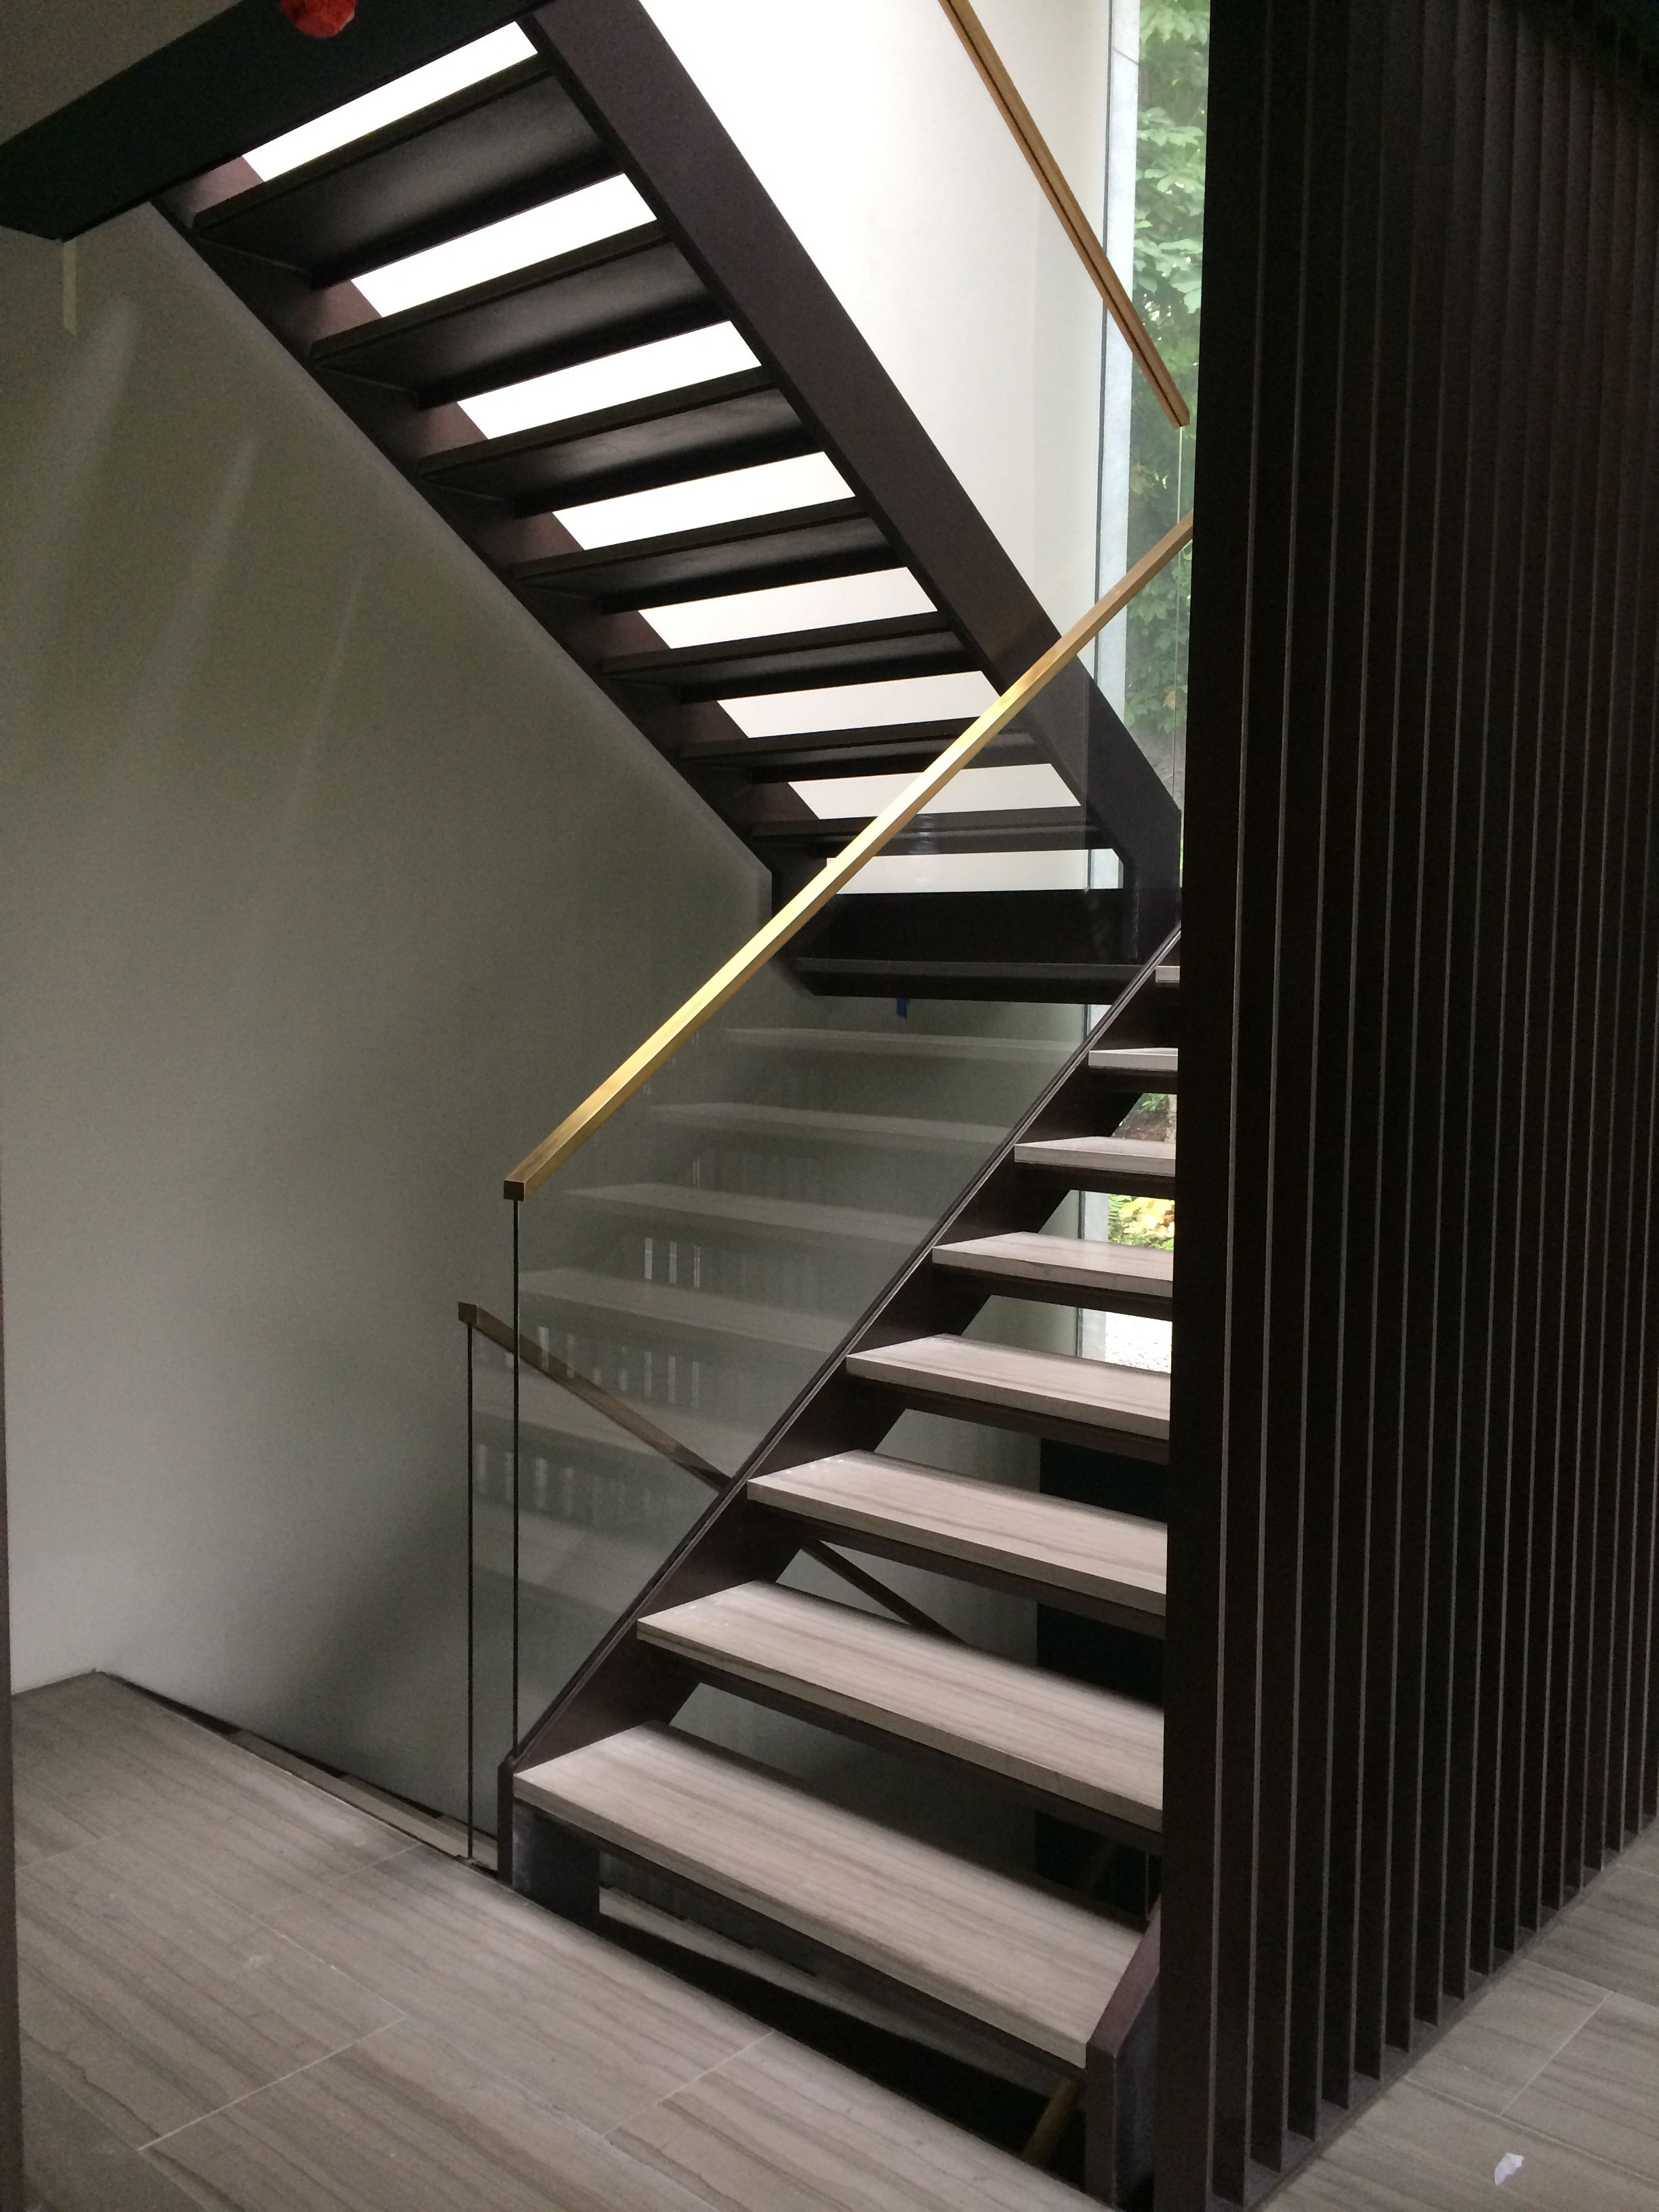 Brass Handrail Slotted Over Glass Balustrade Is Very Effective